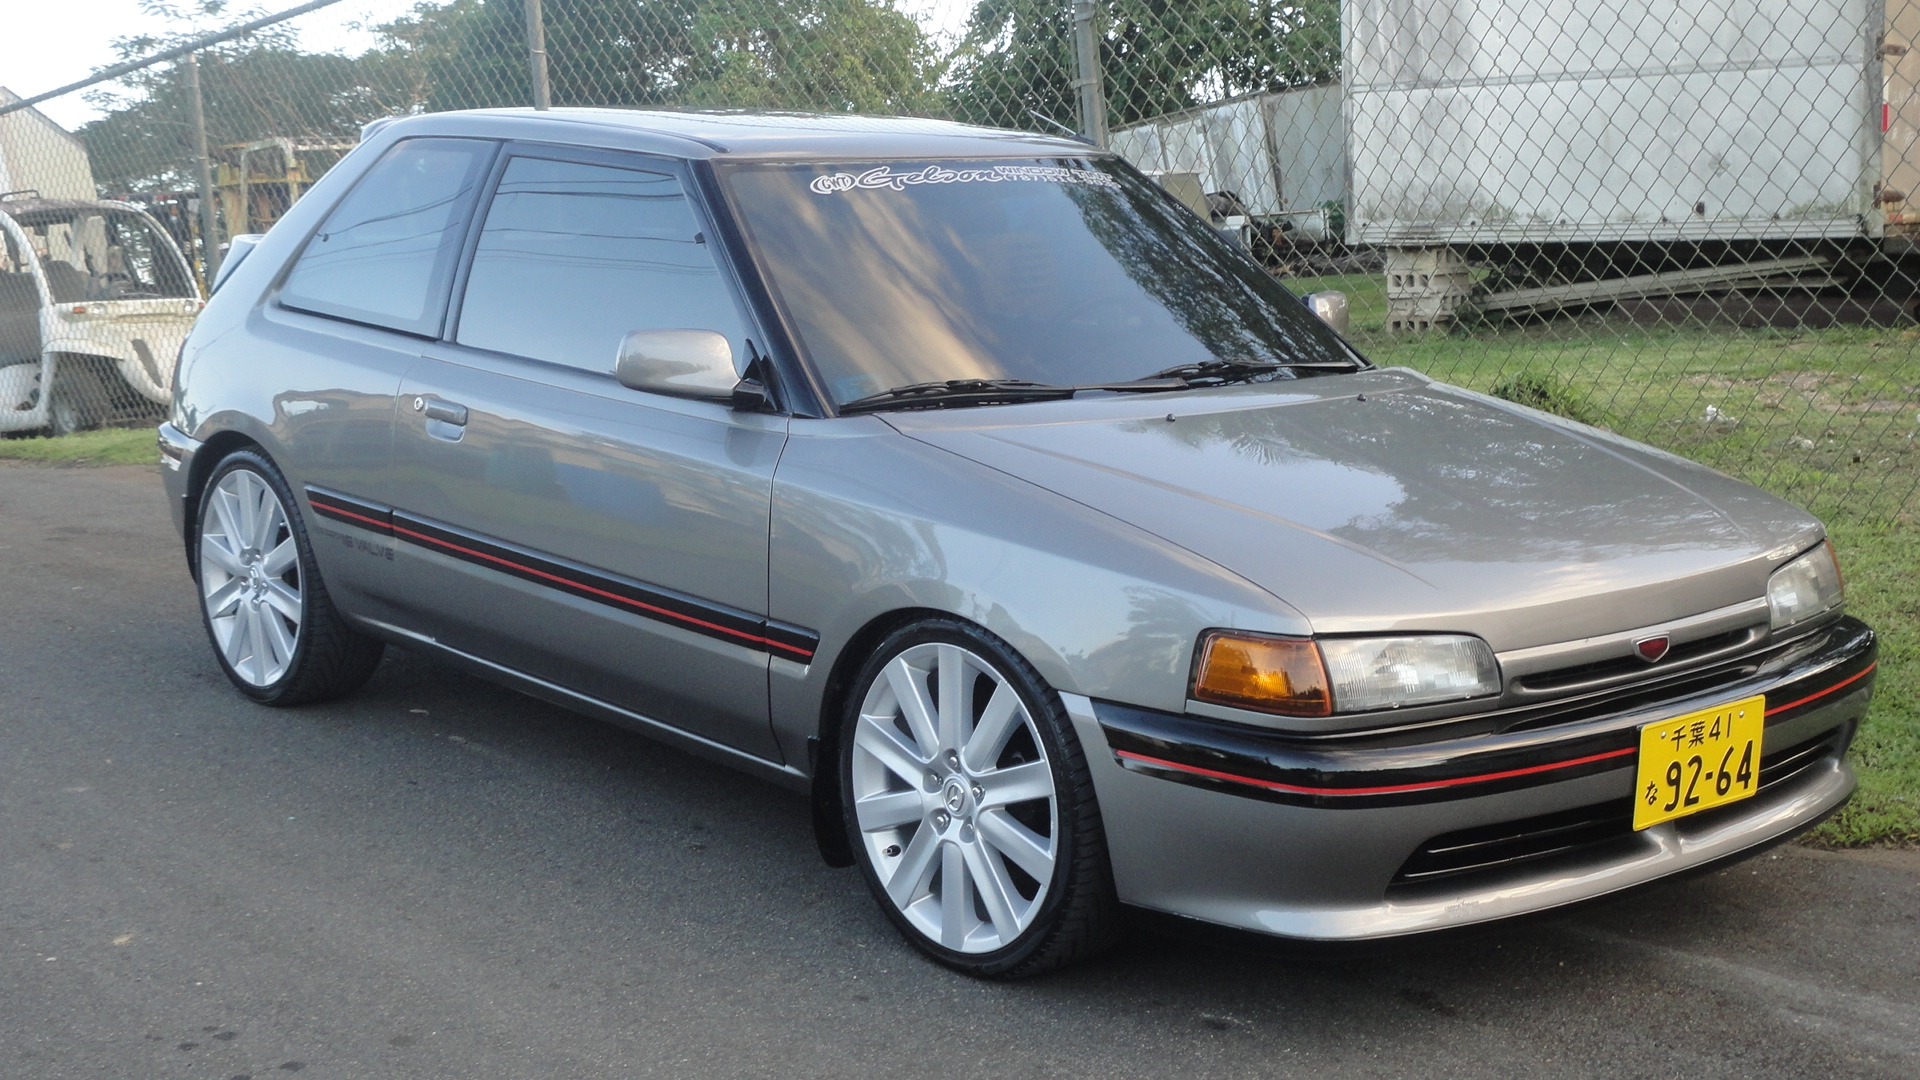 323mecanicapagan 1993 mazda 323 specs photos modification info at cardomain. Black Bedroom Furniture Sets. Home Design Ideas